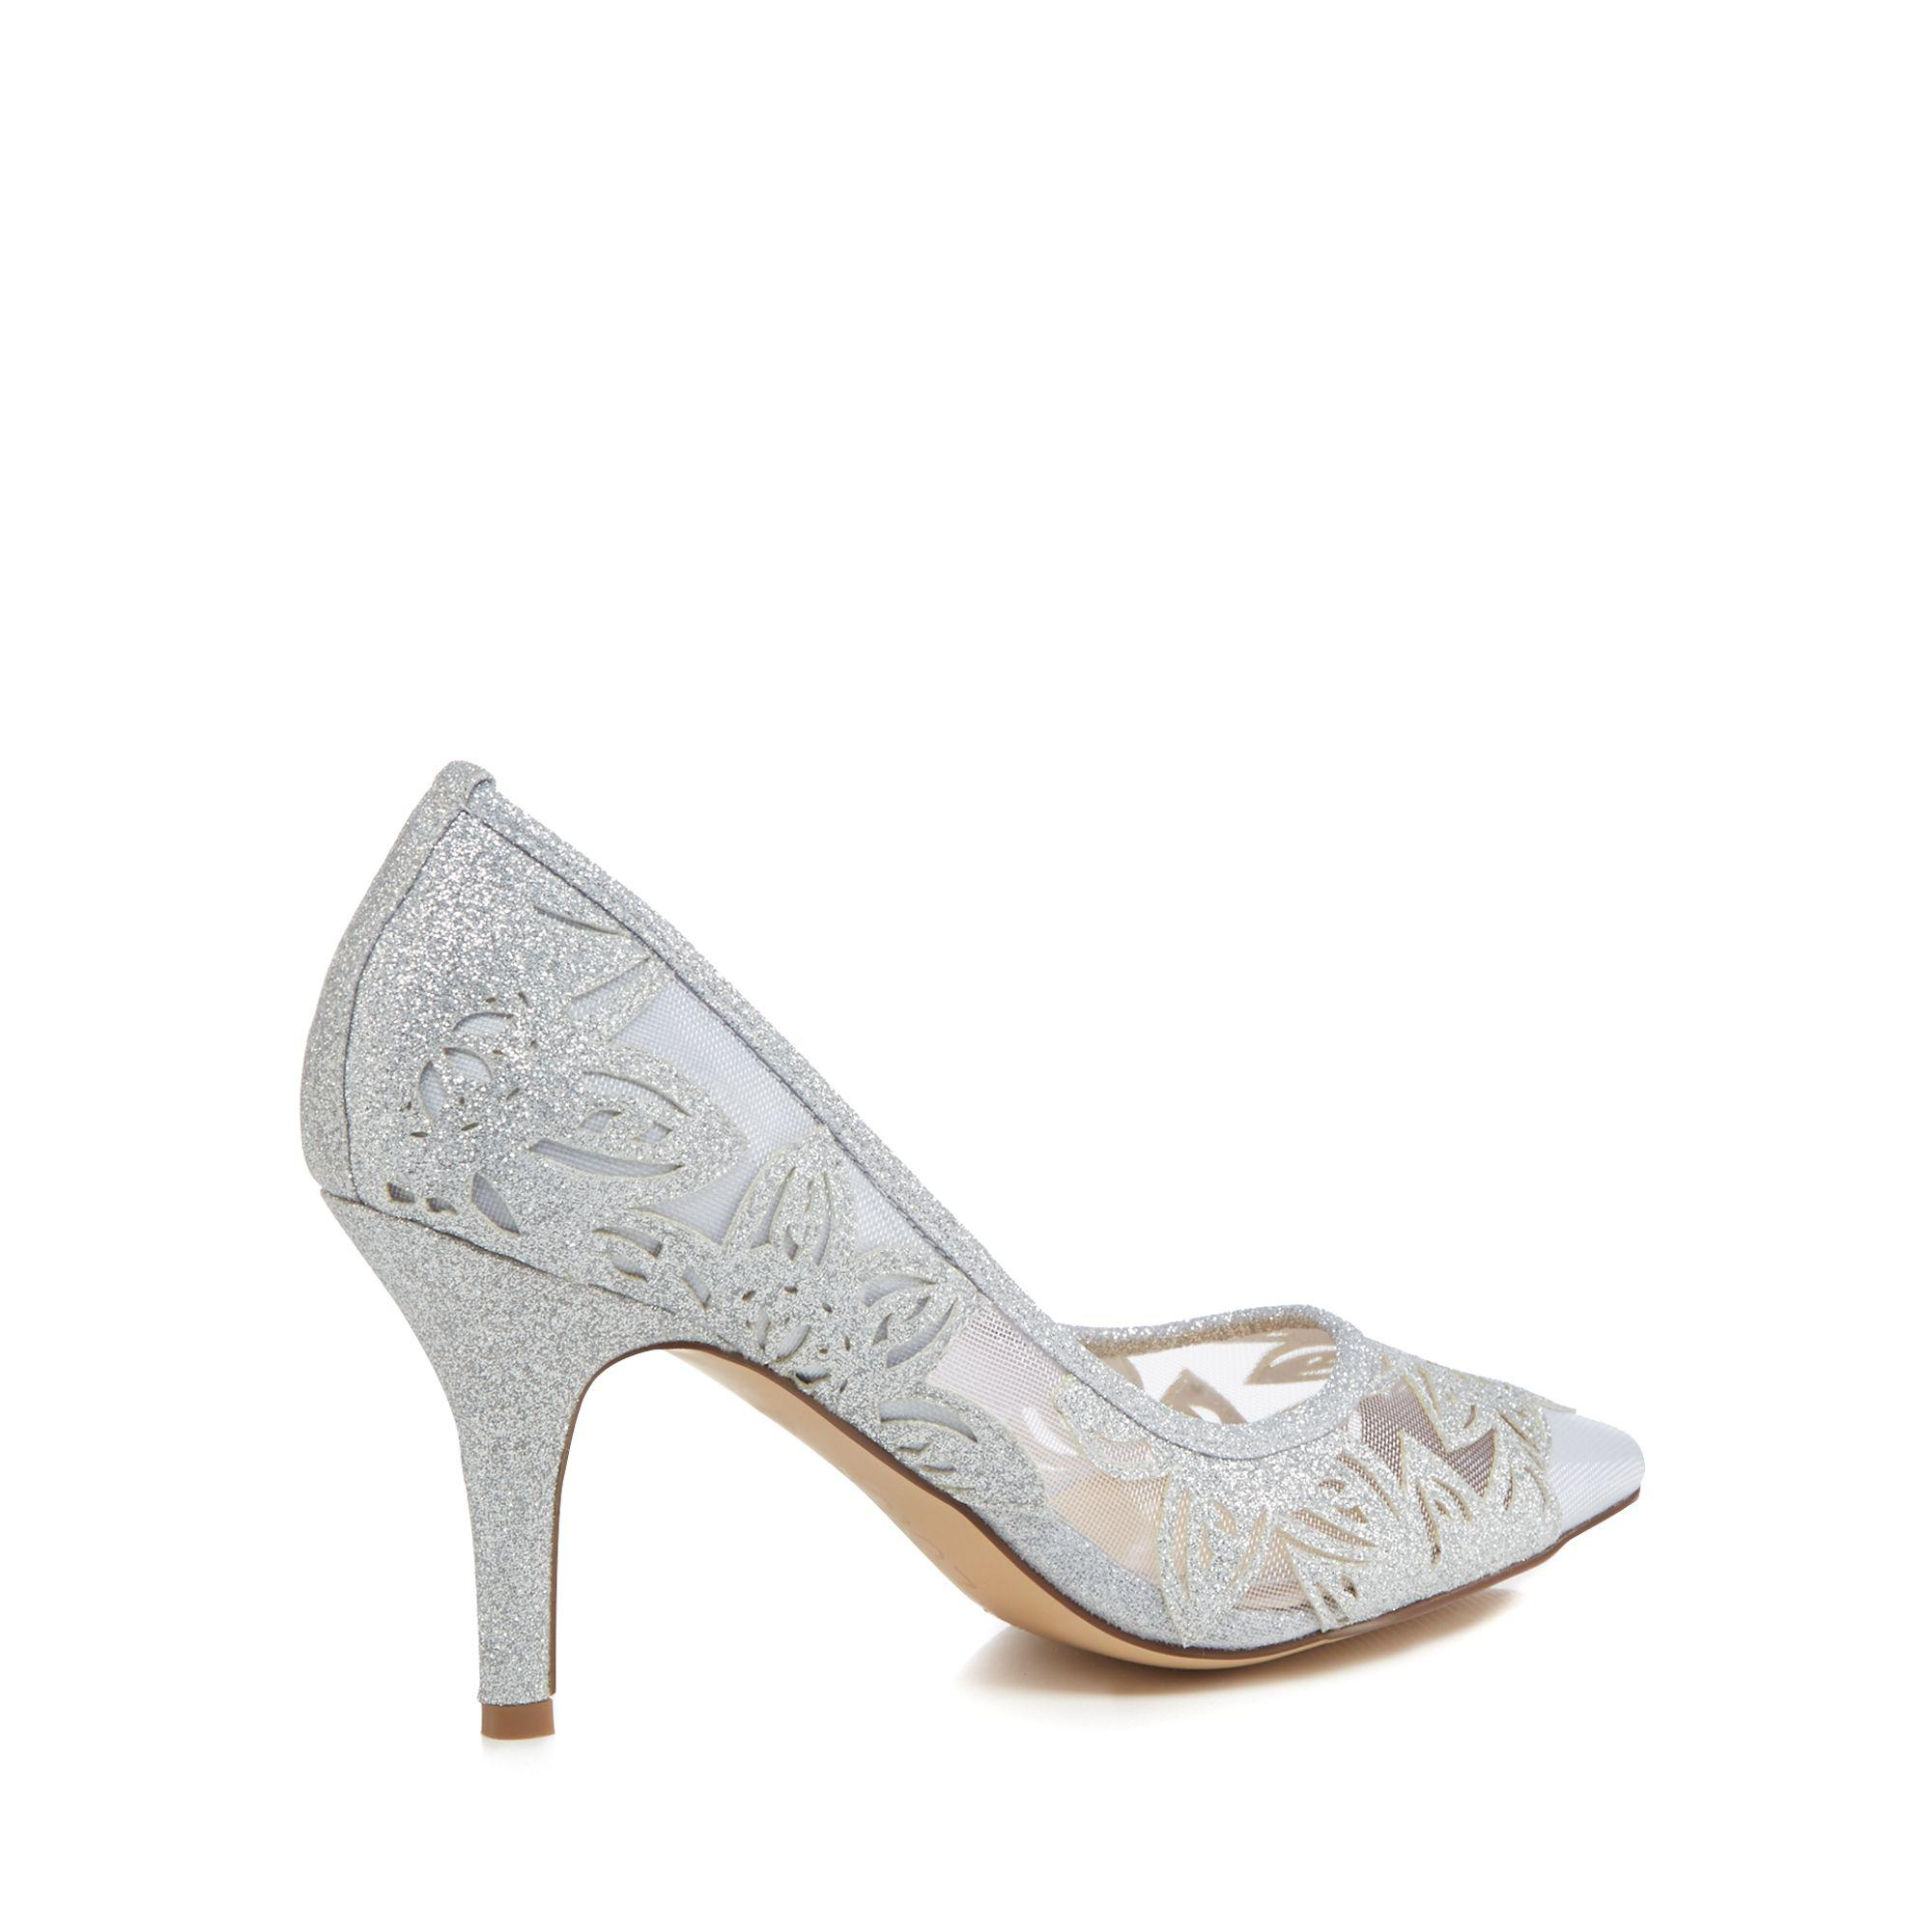 621e2f6643 Tap to visit site. Lotus - Metallic Silver Glitter 'arlind' High Stiletto  Heel Pointed Shoes - Lyst